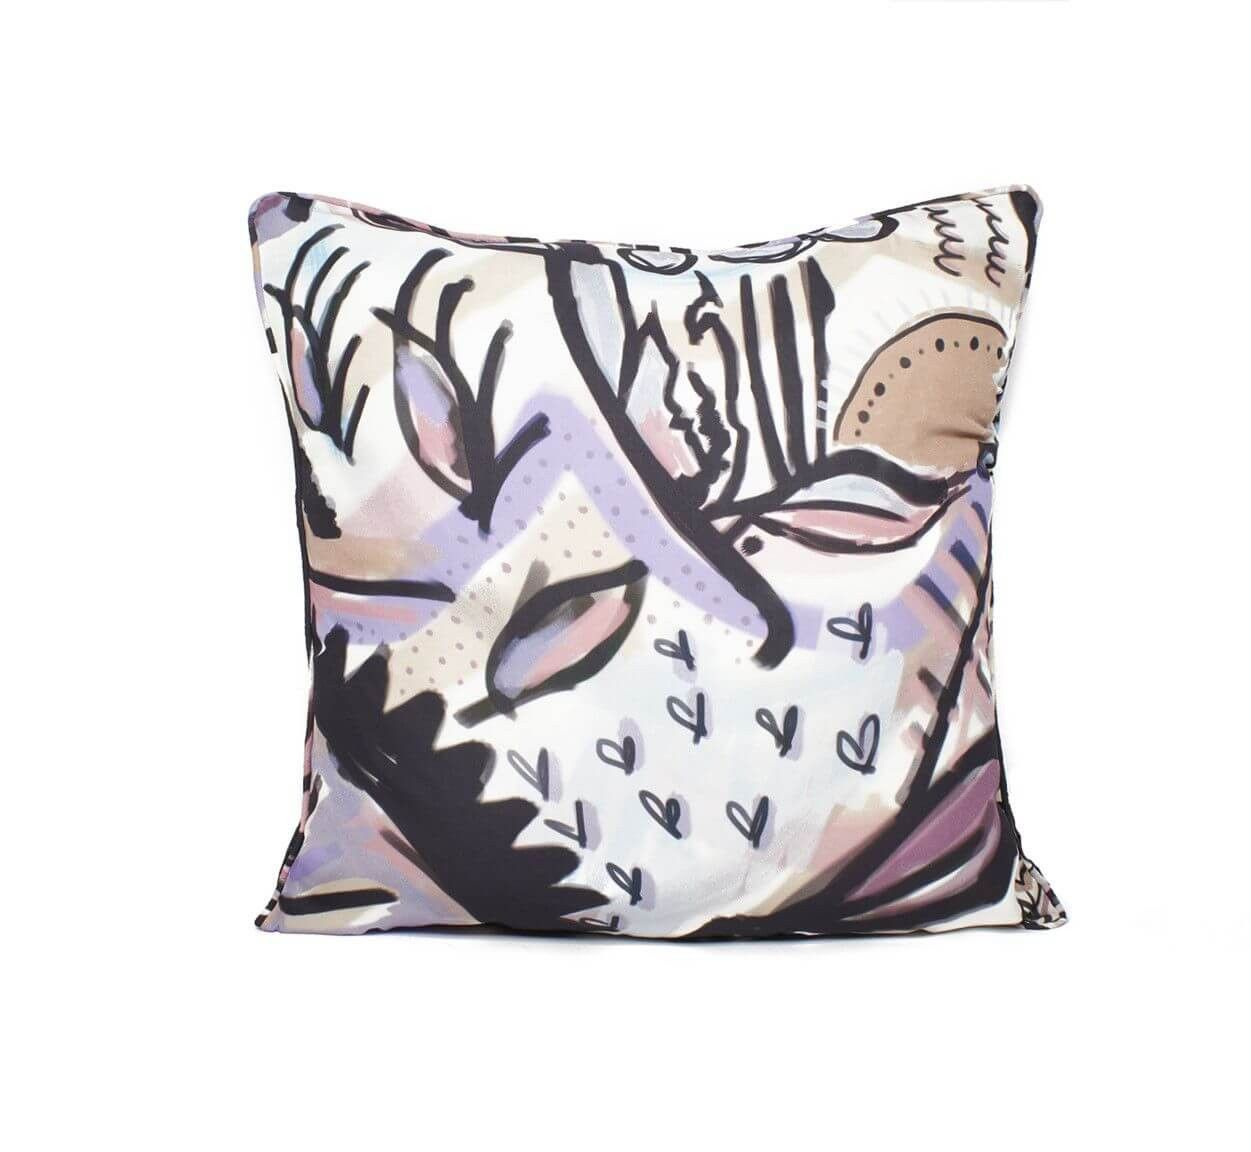 Tangerine NYC women's silk pillow and pillow case in earth tone colored print best seller